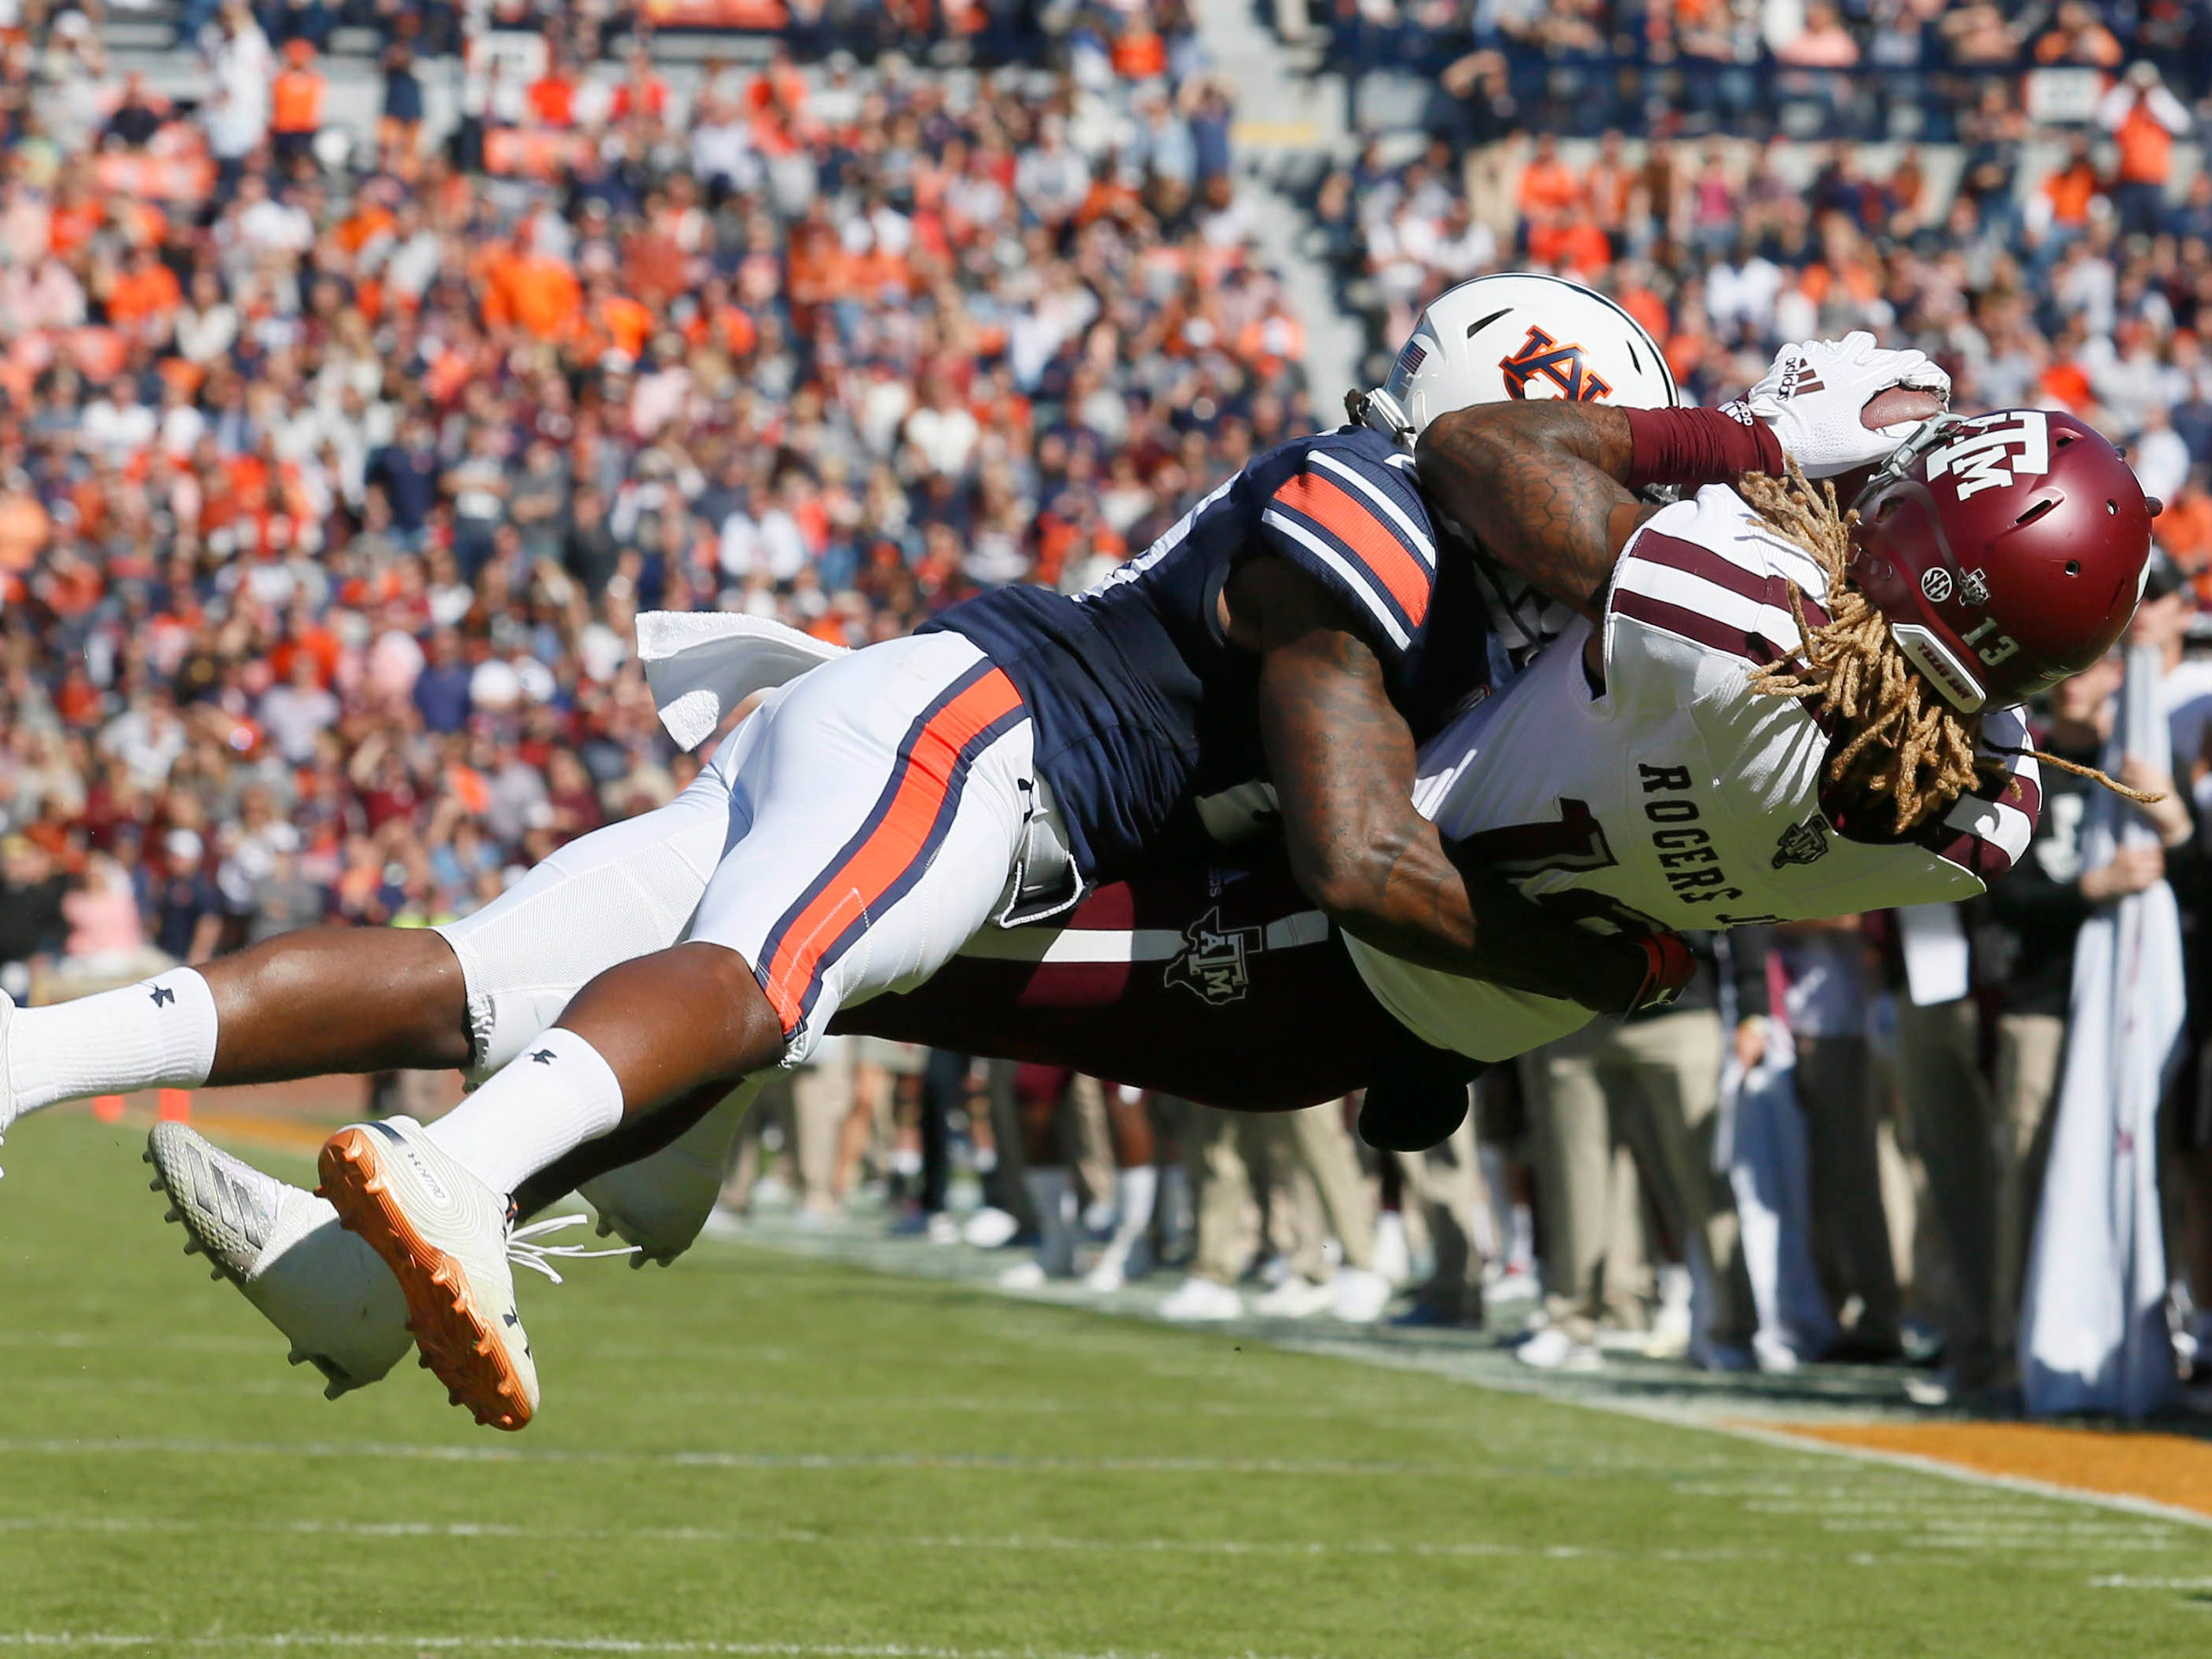 Texas A&M Aggies receiver Kendrick Rogers (13) tries to hang on to this diving catch after taking a hit from Auburn Tigers defensive back Jeremiah Dinson (20) during the second quarter at Jordan-Hare Stadium.